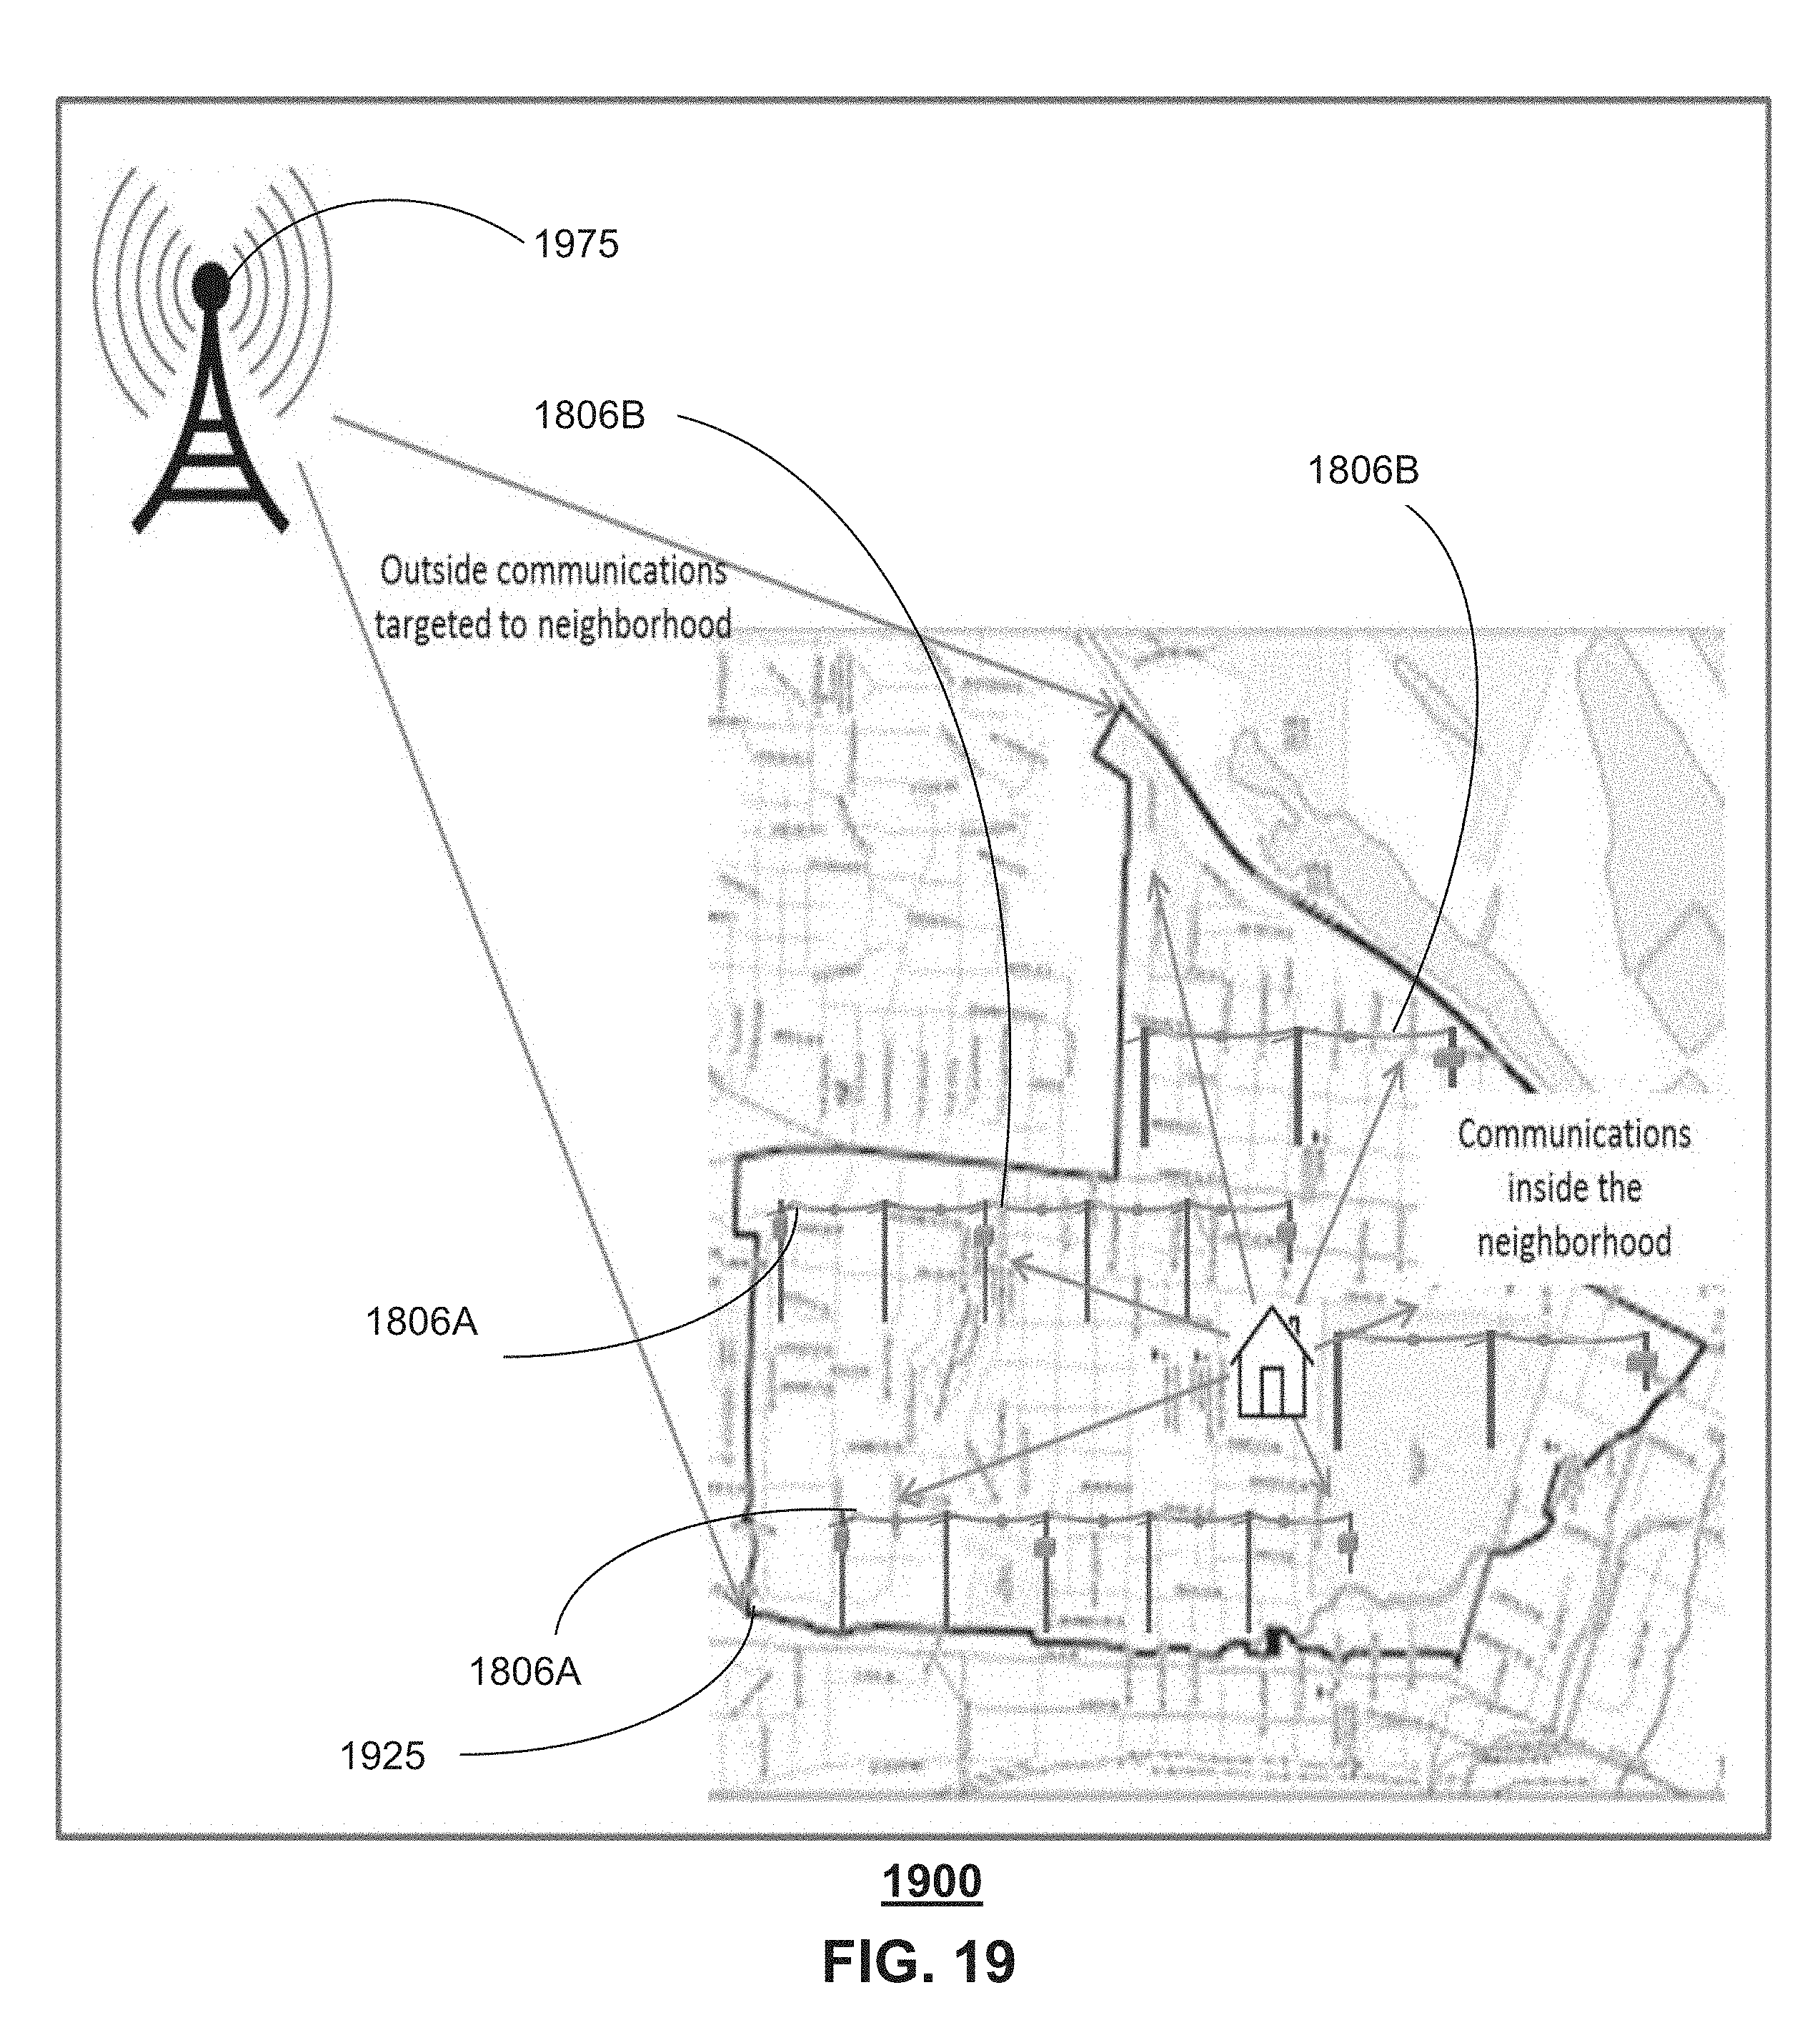 us9735833b2 method and apparatus for munications management in High Leg Delta us9735833b2 method and apparatus for munications management in a neighborhood network patents